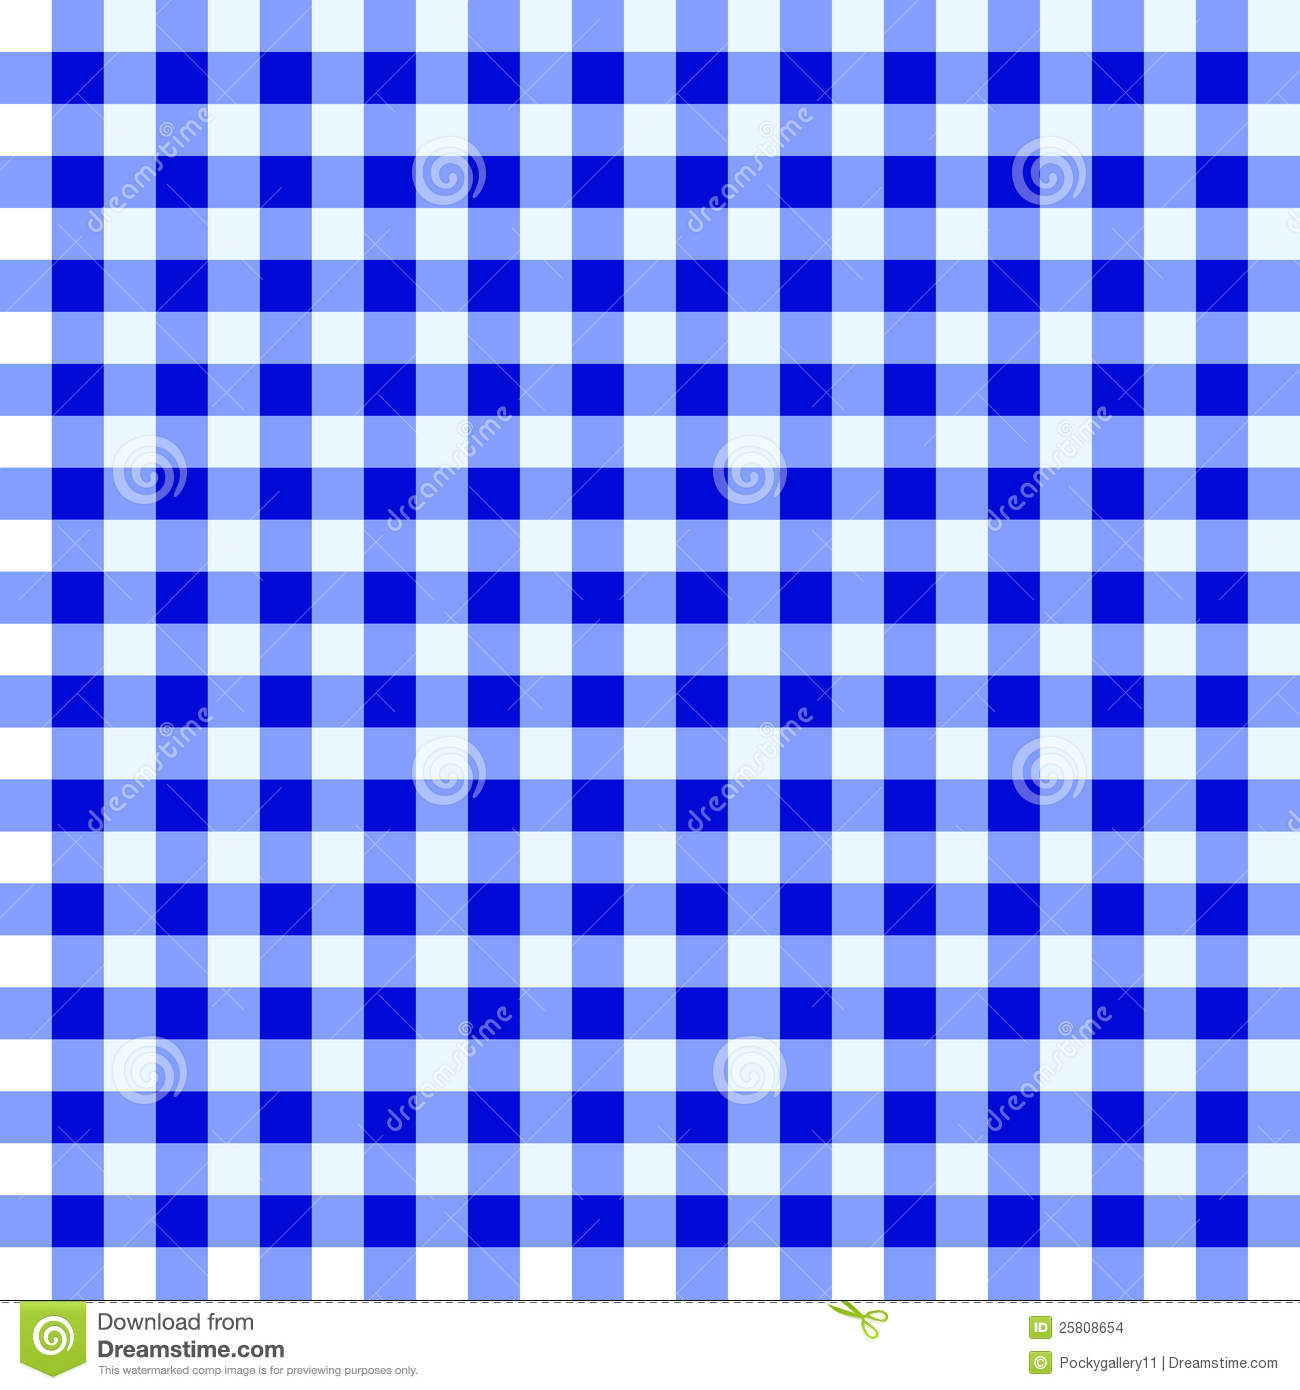 Bon Download Blue And White Tablecloth Stock Vector. Illustration Of Checkered    25808654